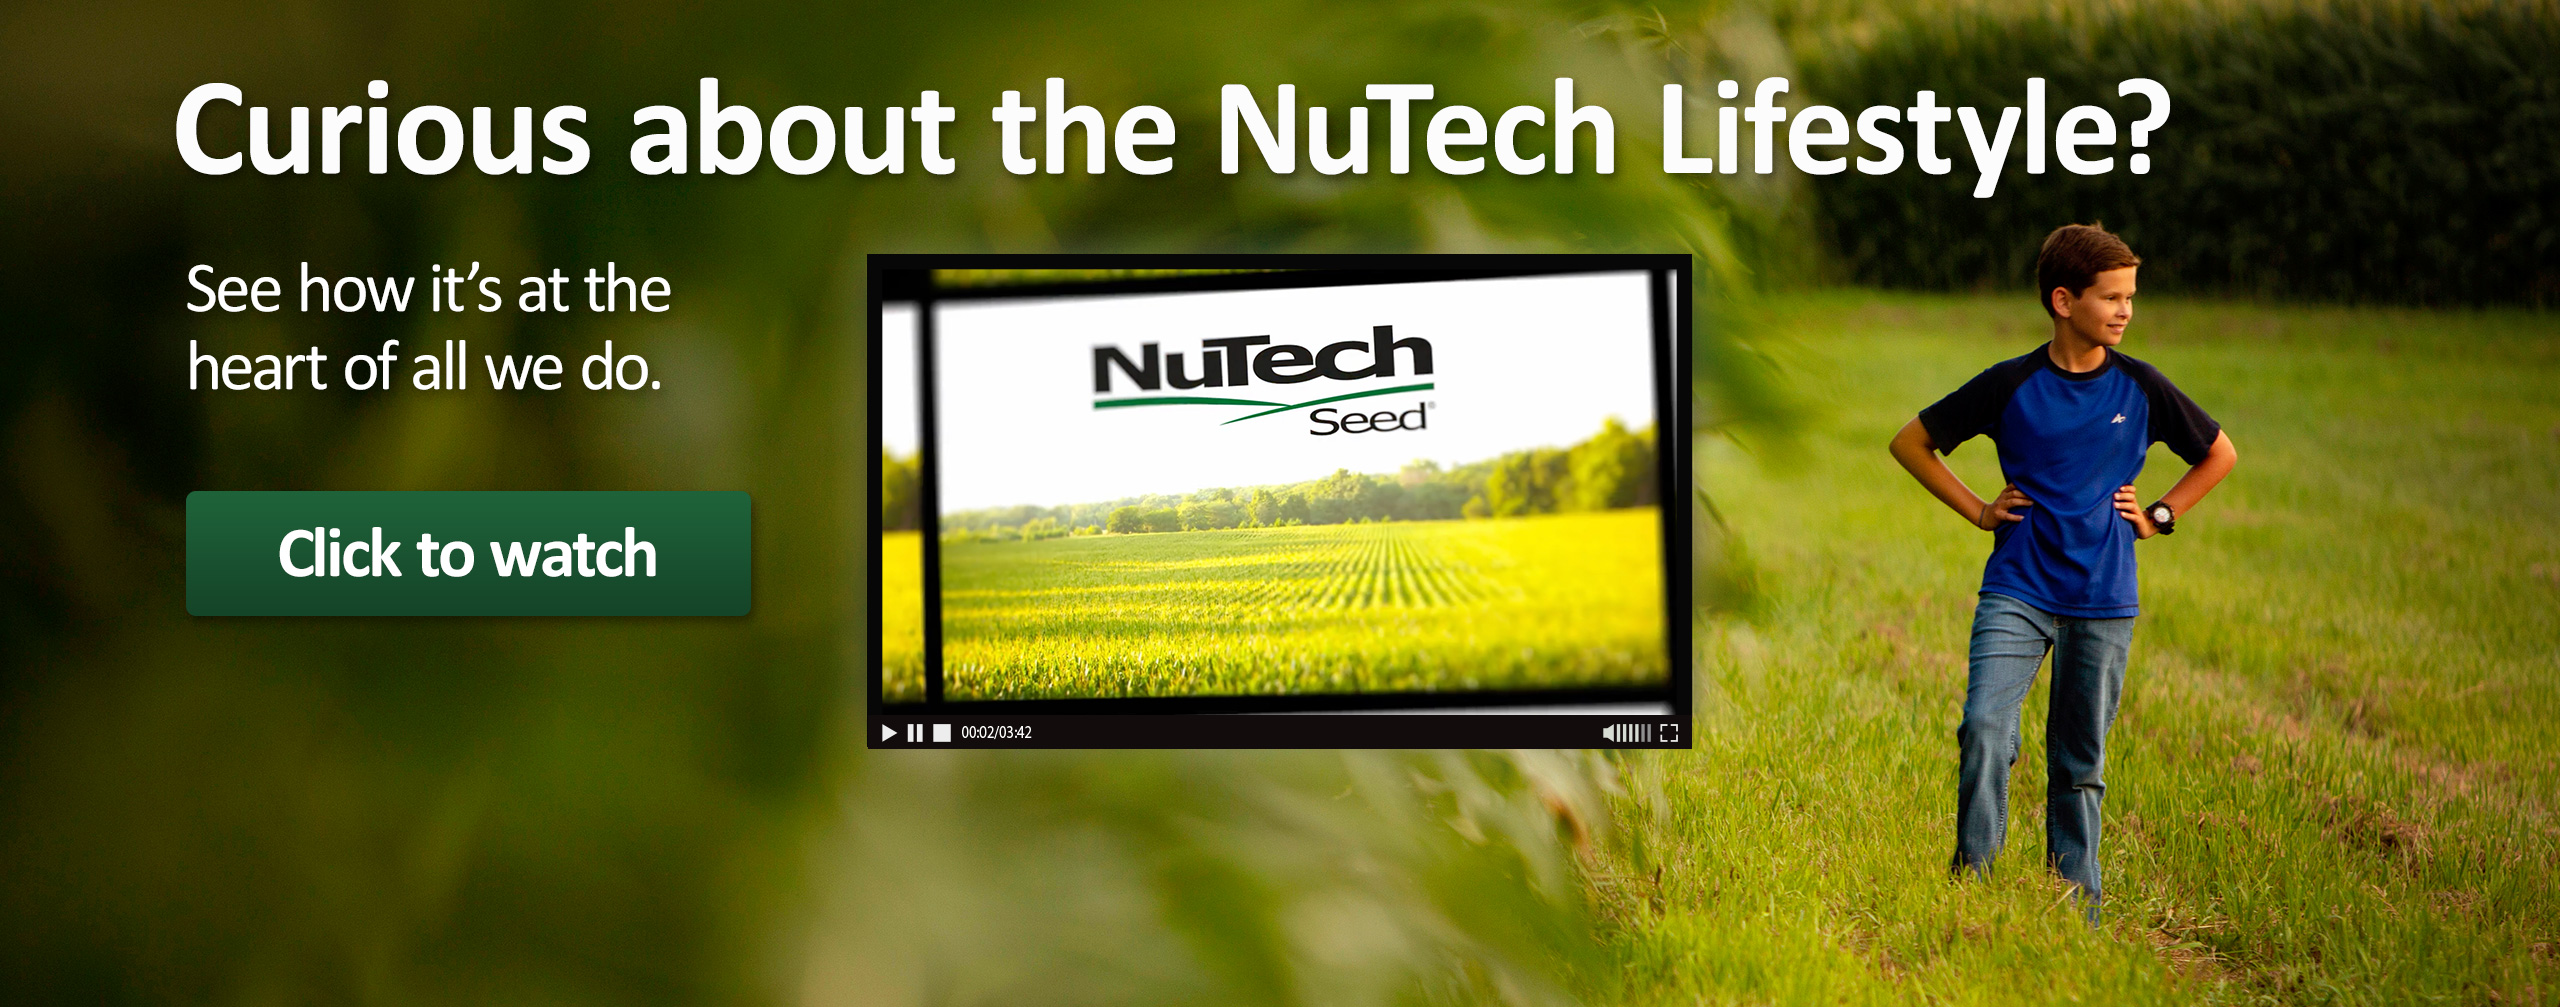 NuTech Lifestyle